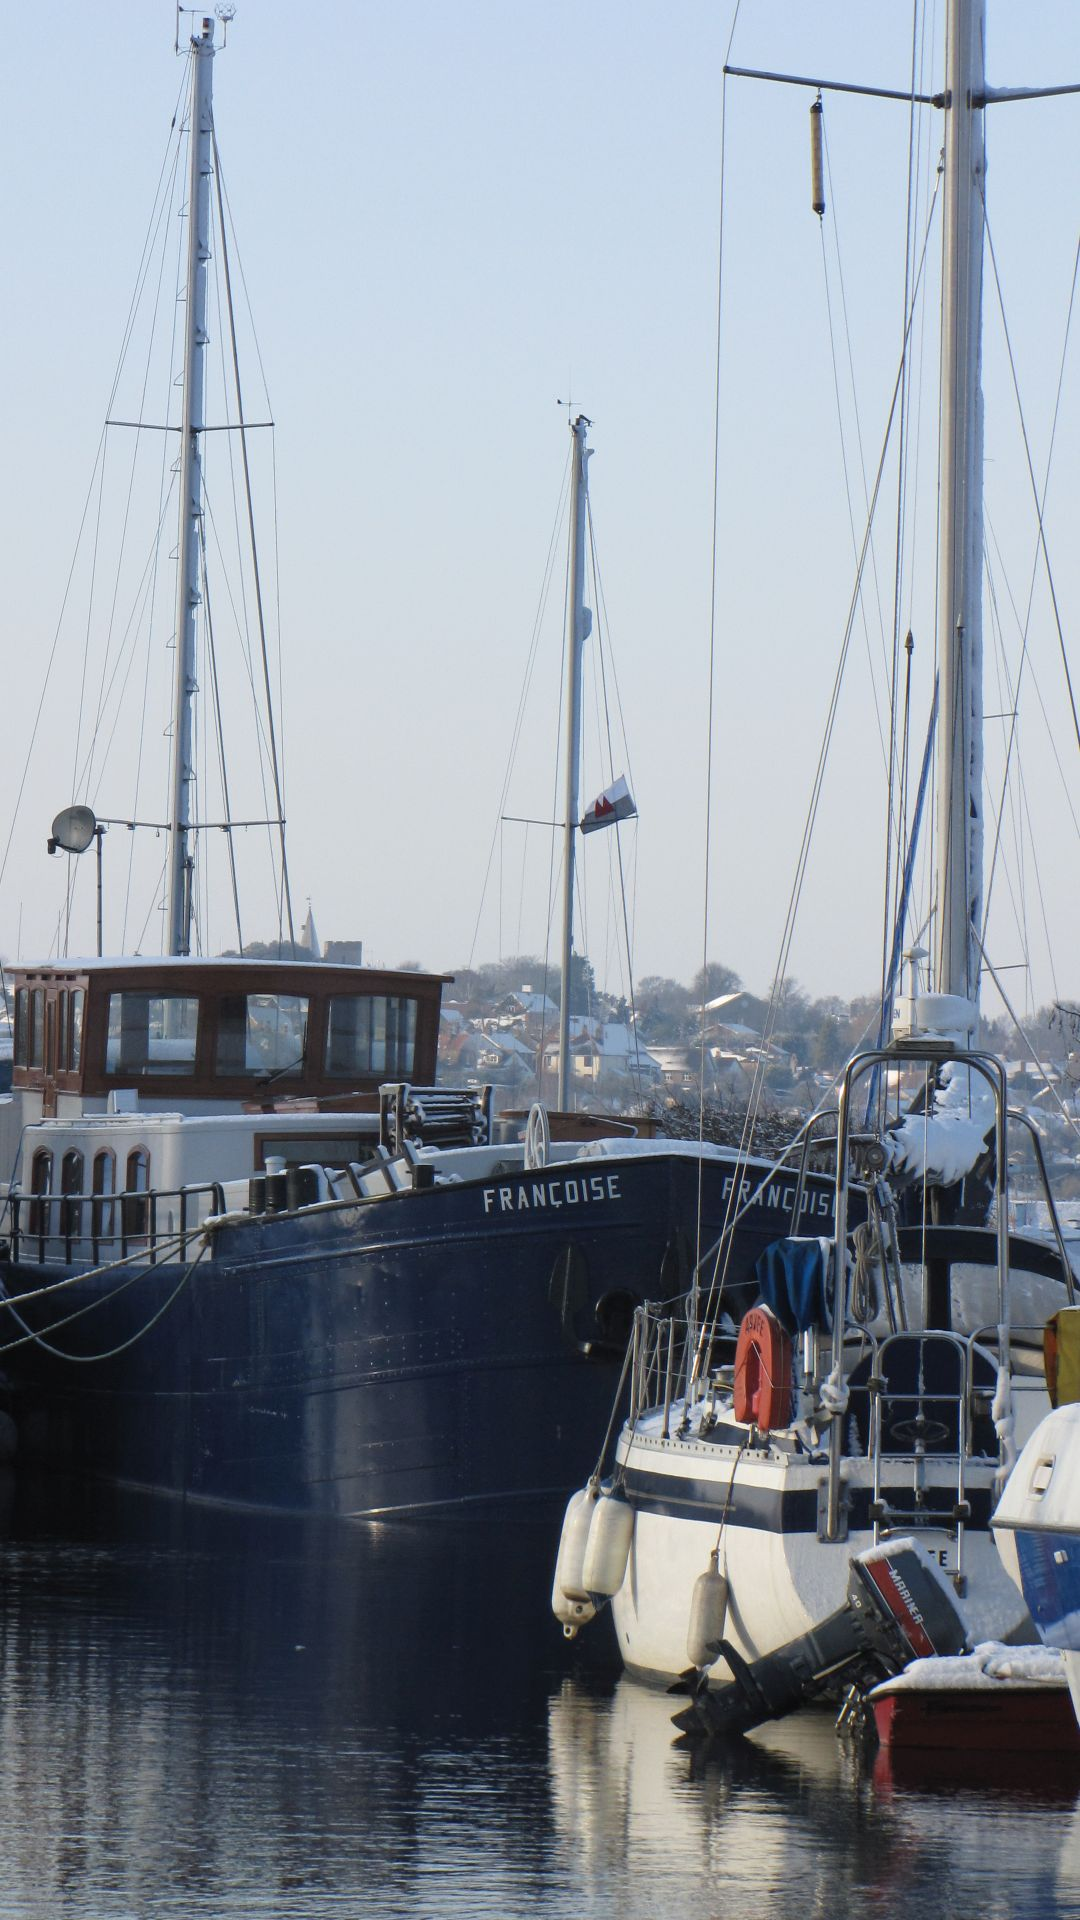 Heybridge Basin, Essex, UK - boats moored on the canal for the winter